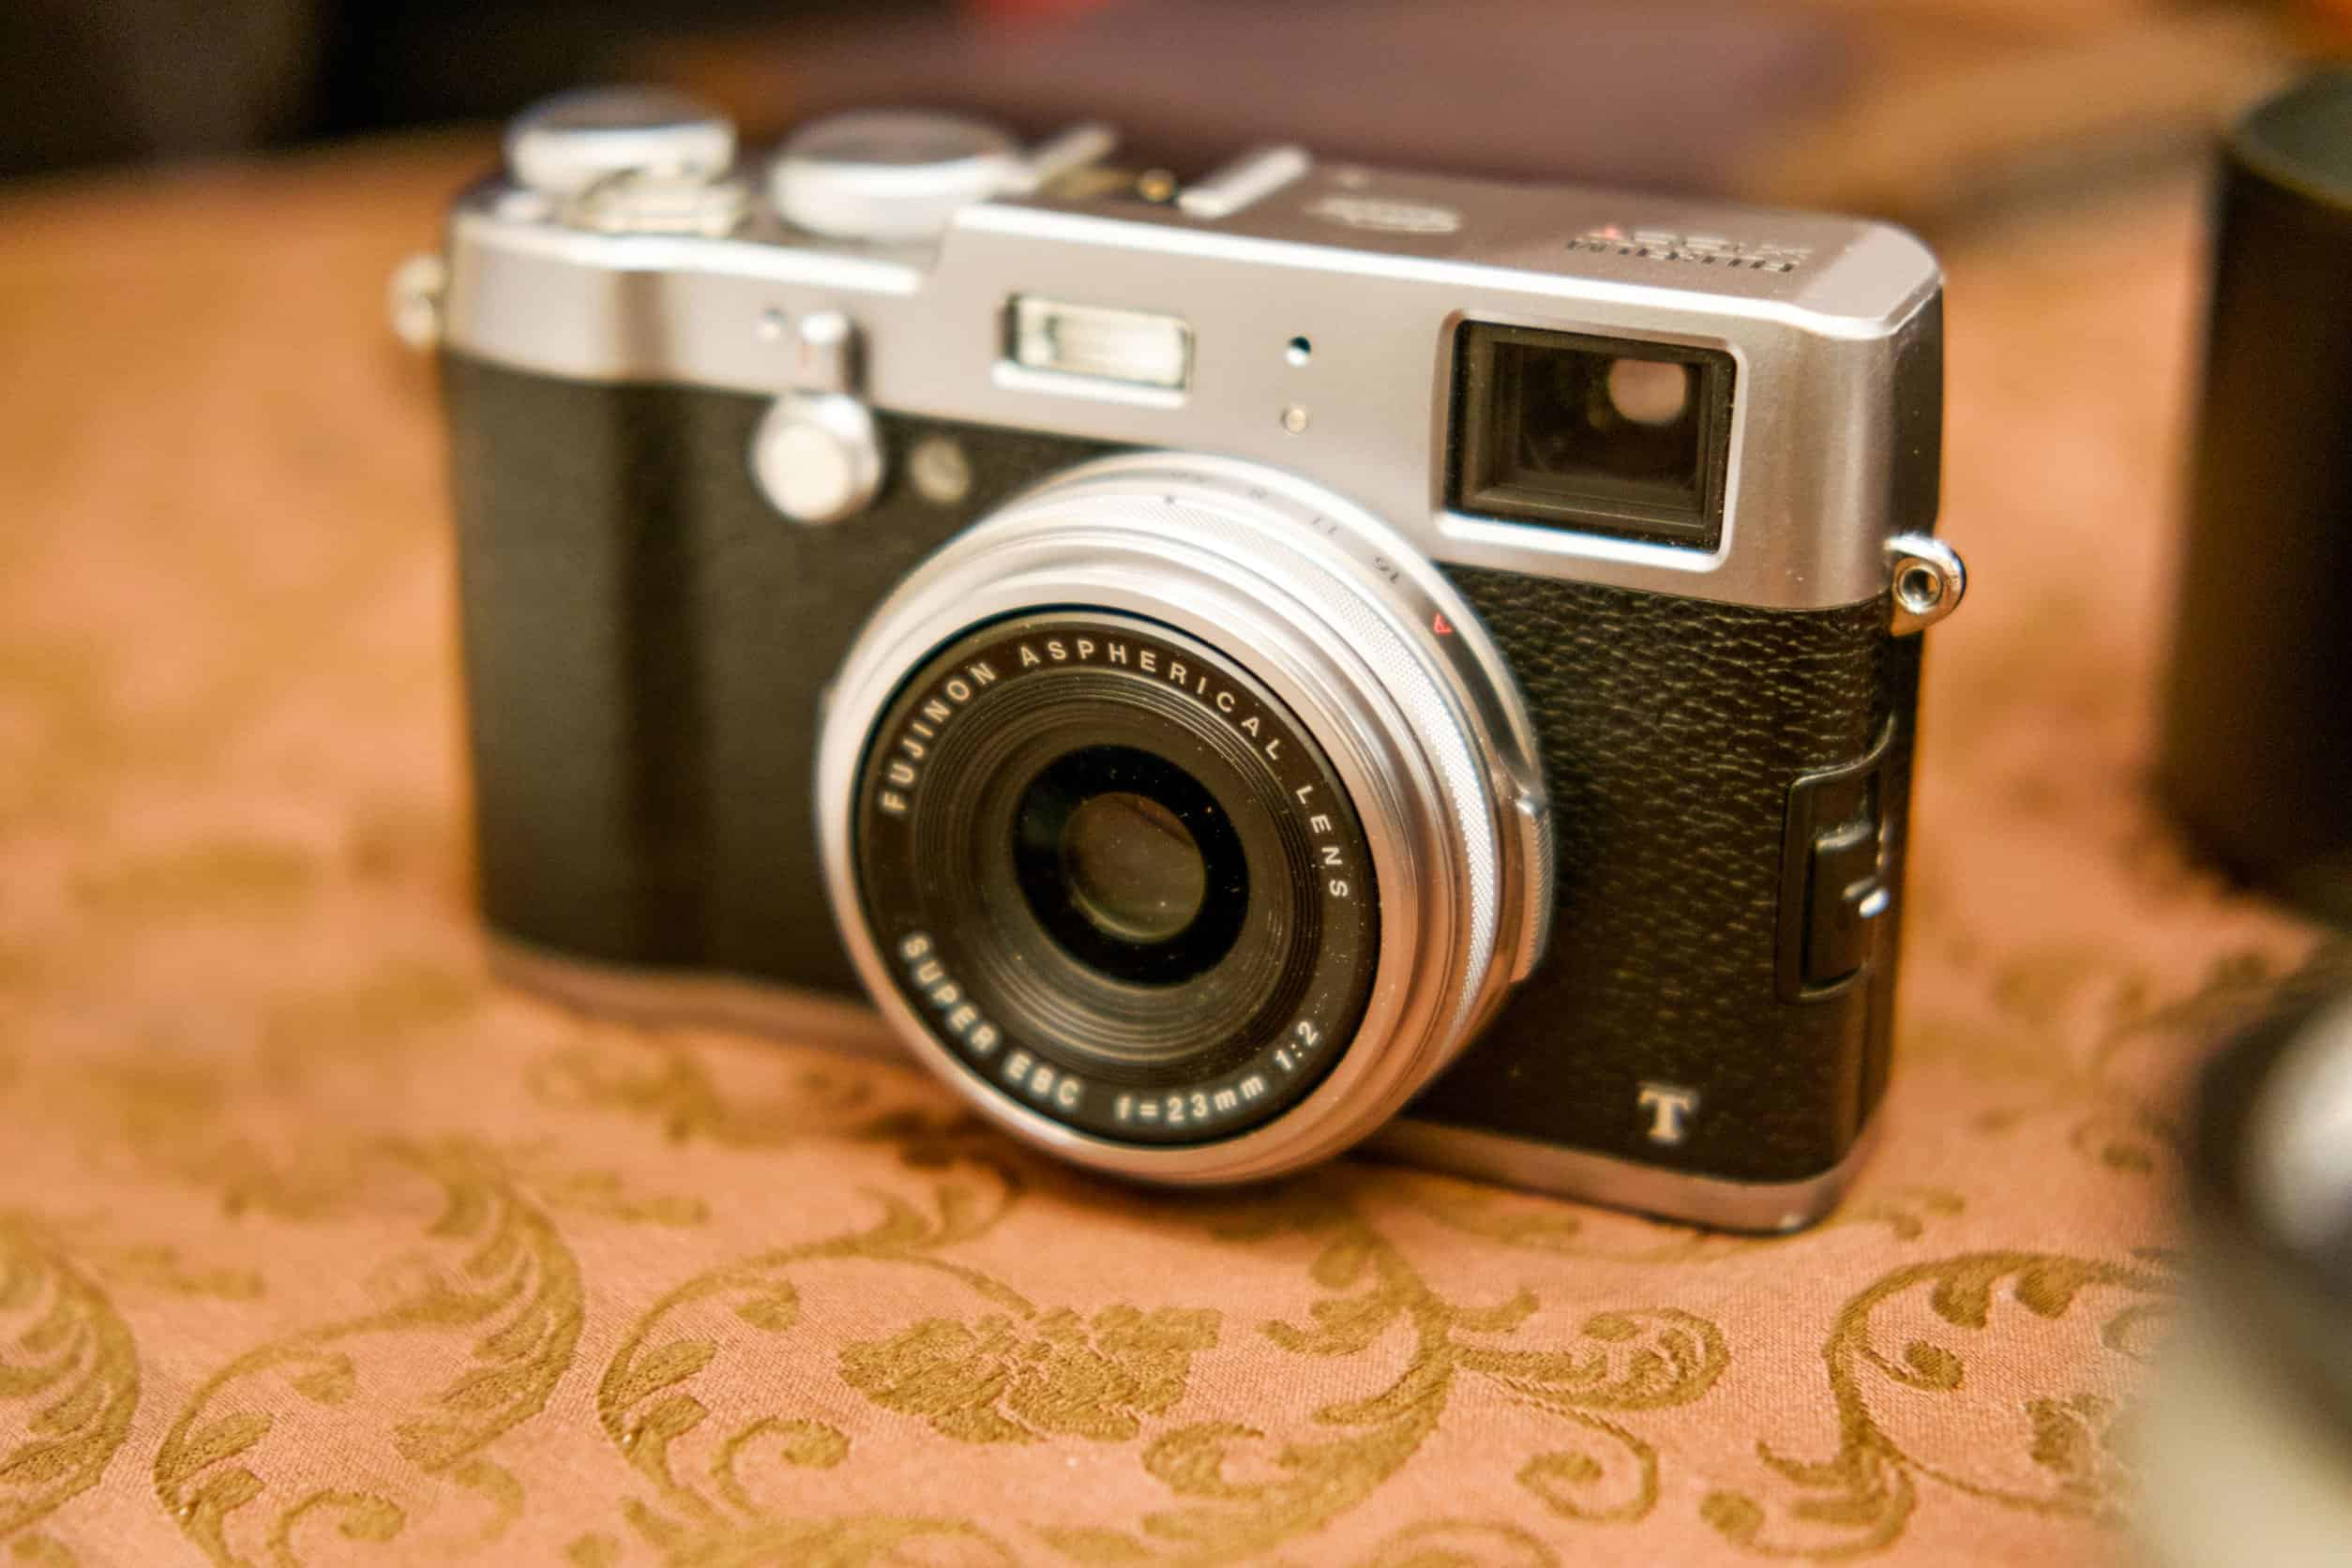 mirrorless, fotocamera mirrorless, fotocamere mirrorless